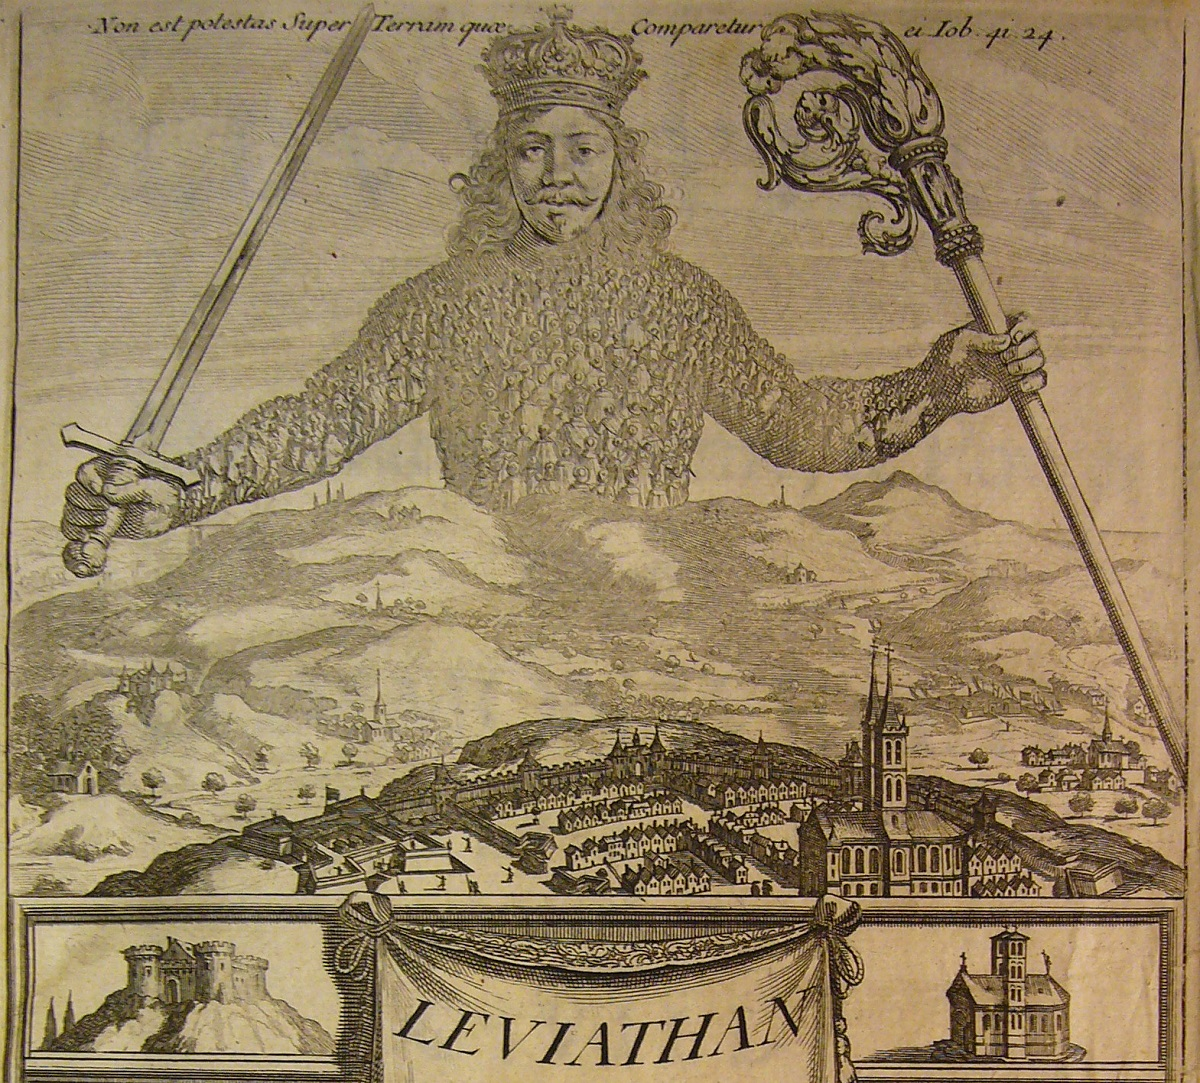 Hobbes' Leviathan: editions in disguise